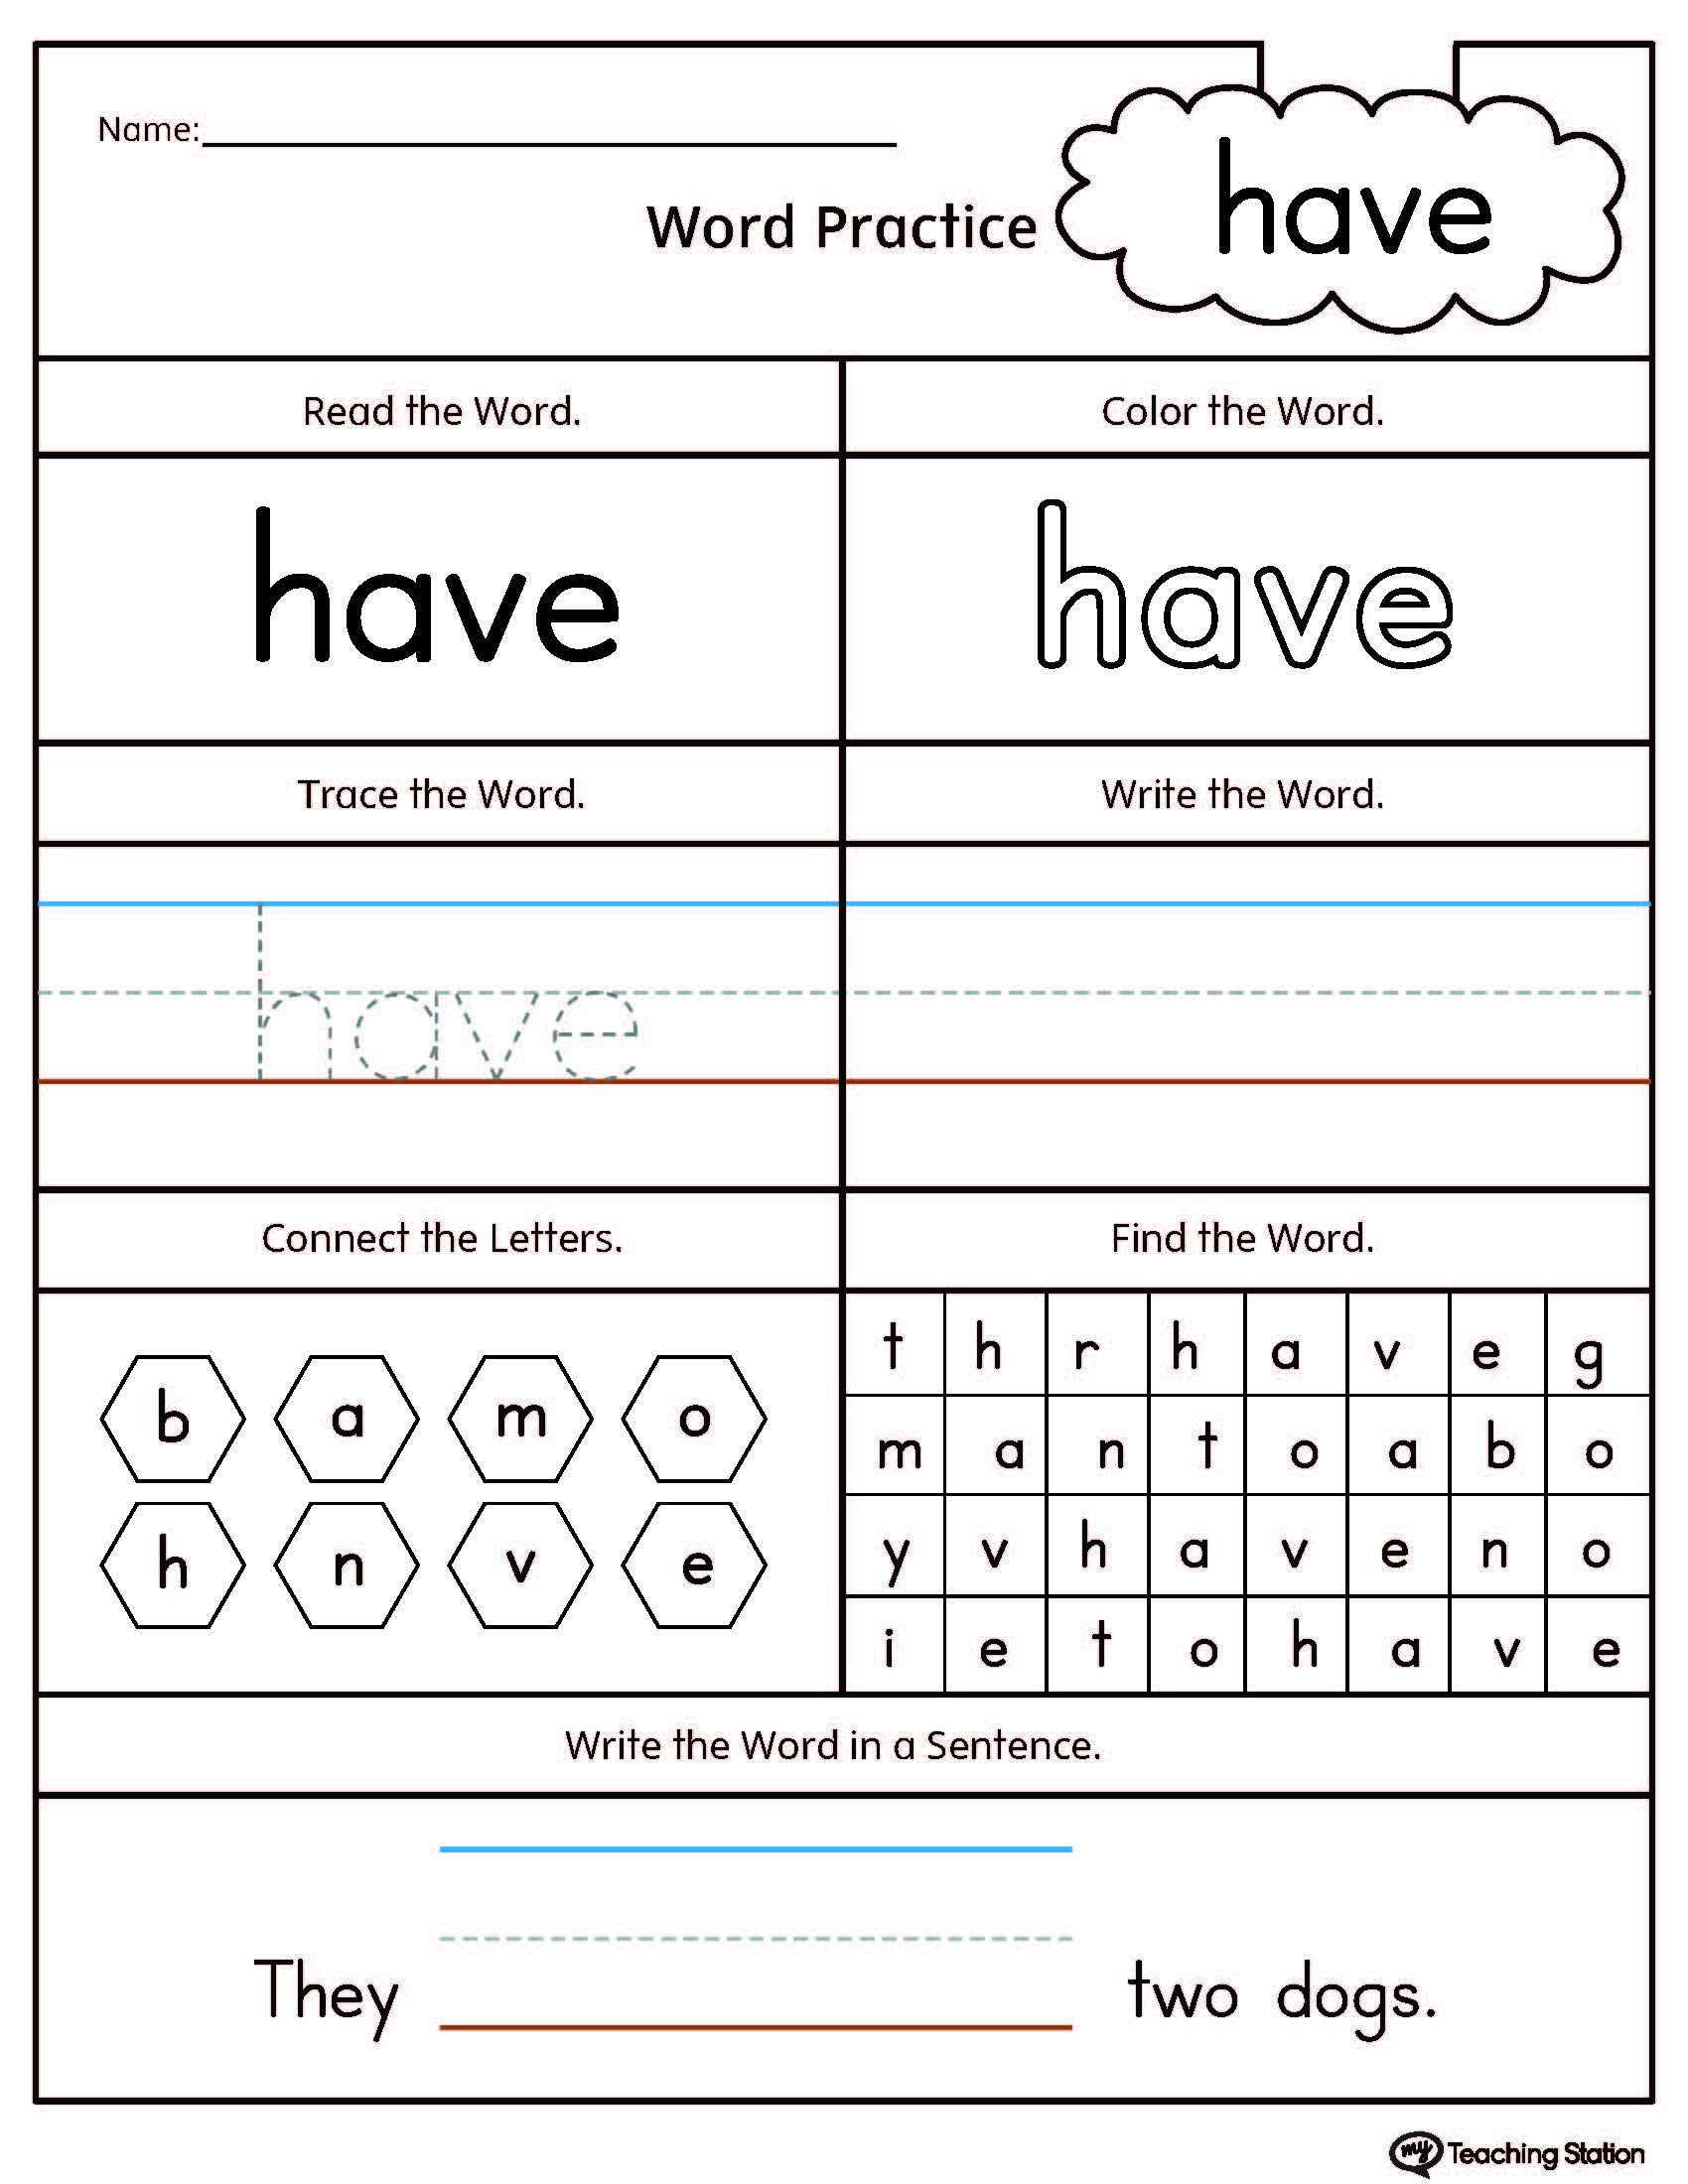 worksheet Site Word Worksheets high frequency words printable worksheets myteachingstation com word have worksheet